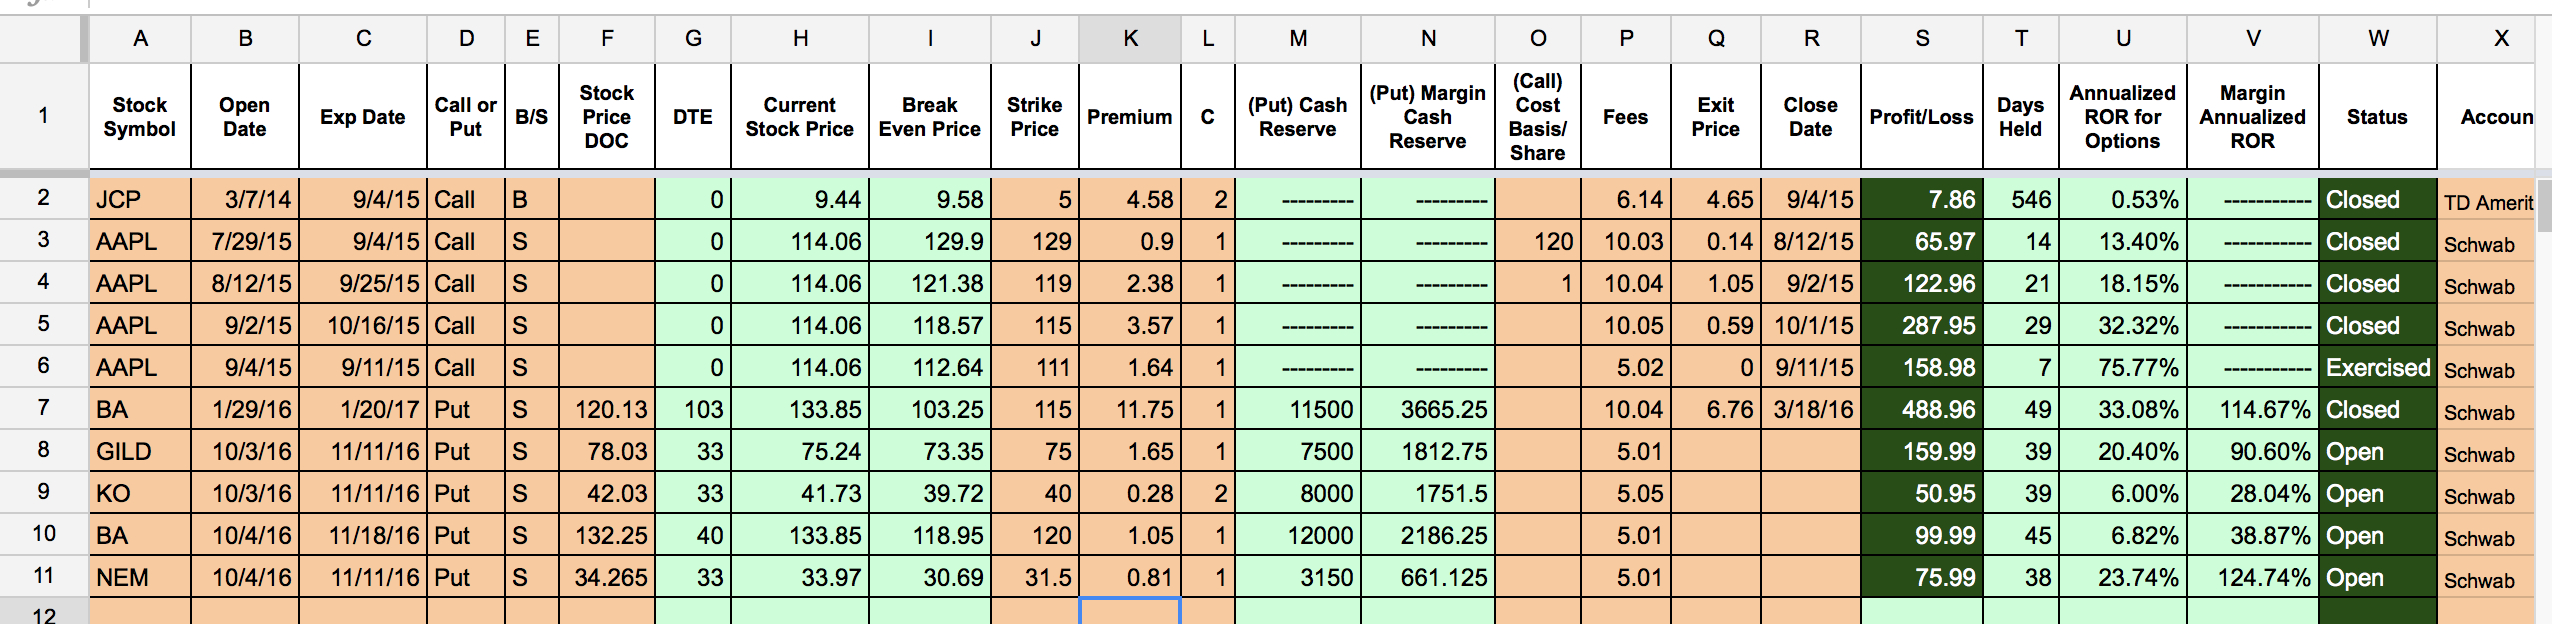 bank reconciliation excel template excel bank account